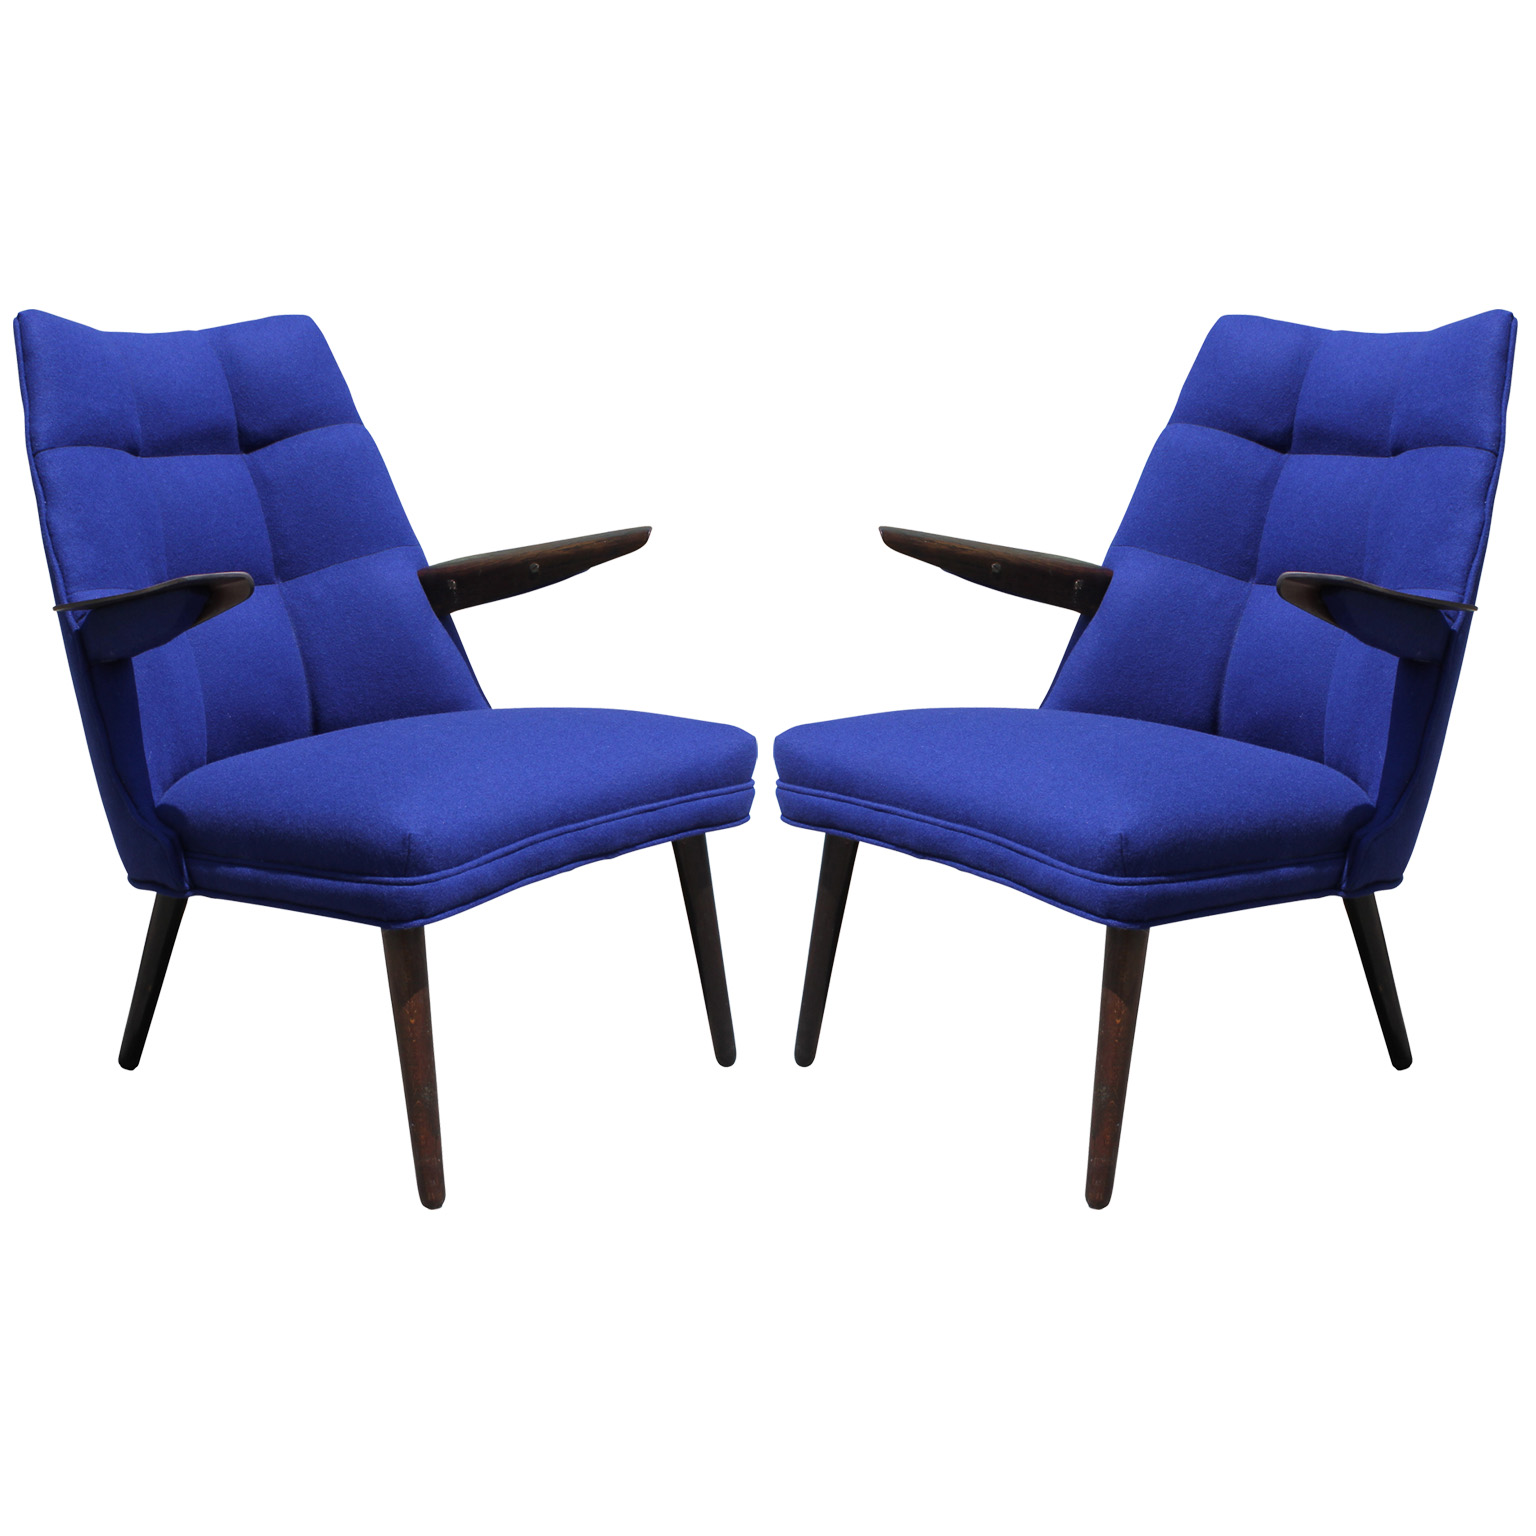 Pair of Blue Danish Style Armchairs : blue chairs7 from www.reevesantiqueshouston.com size 1536 x 1536 jpeg 252kB